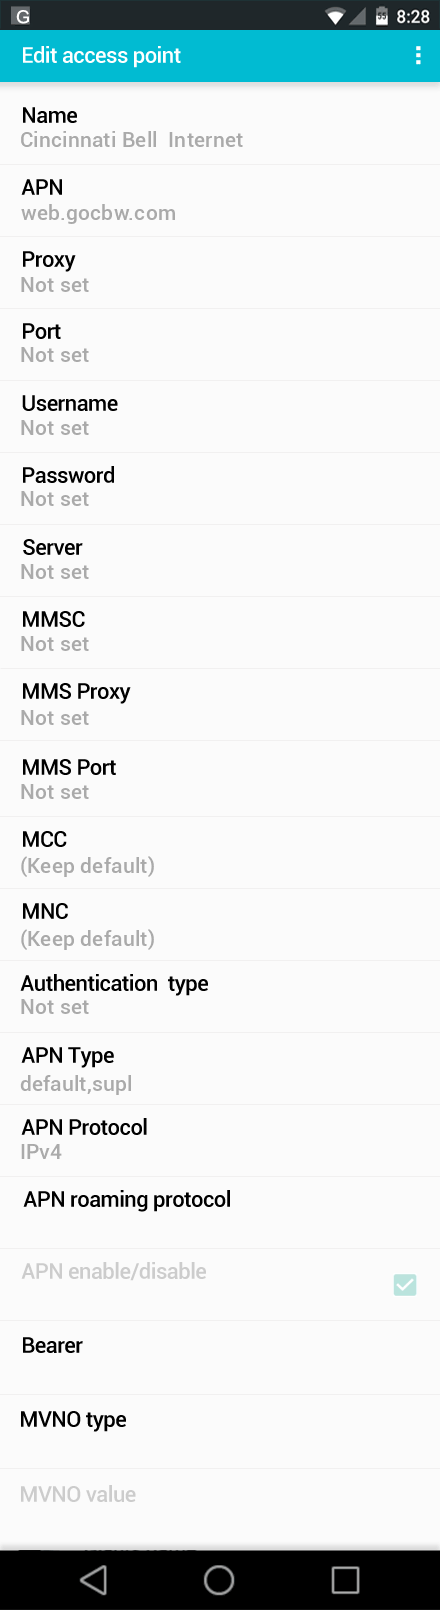 Cincinnati Bell  Internet APN settings for Android screenshot